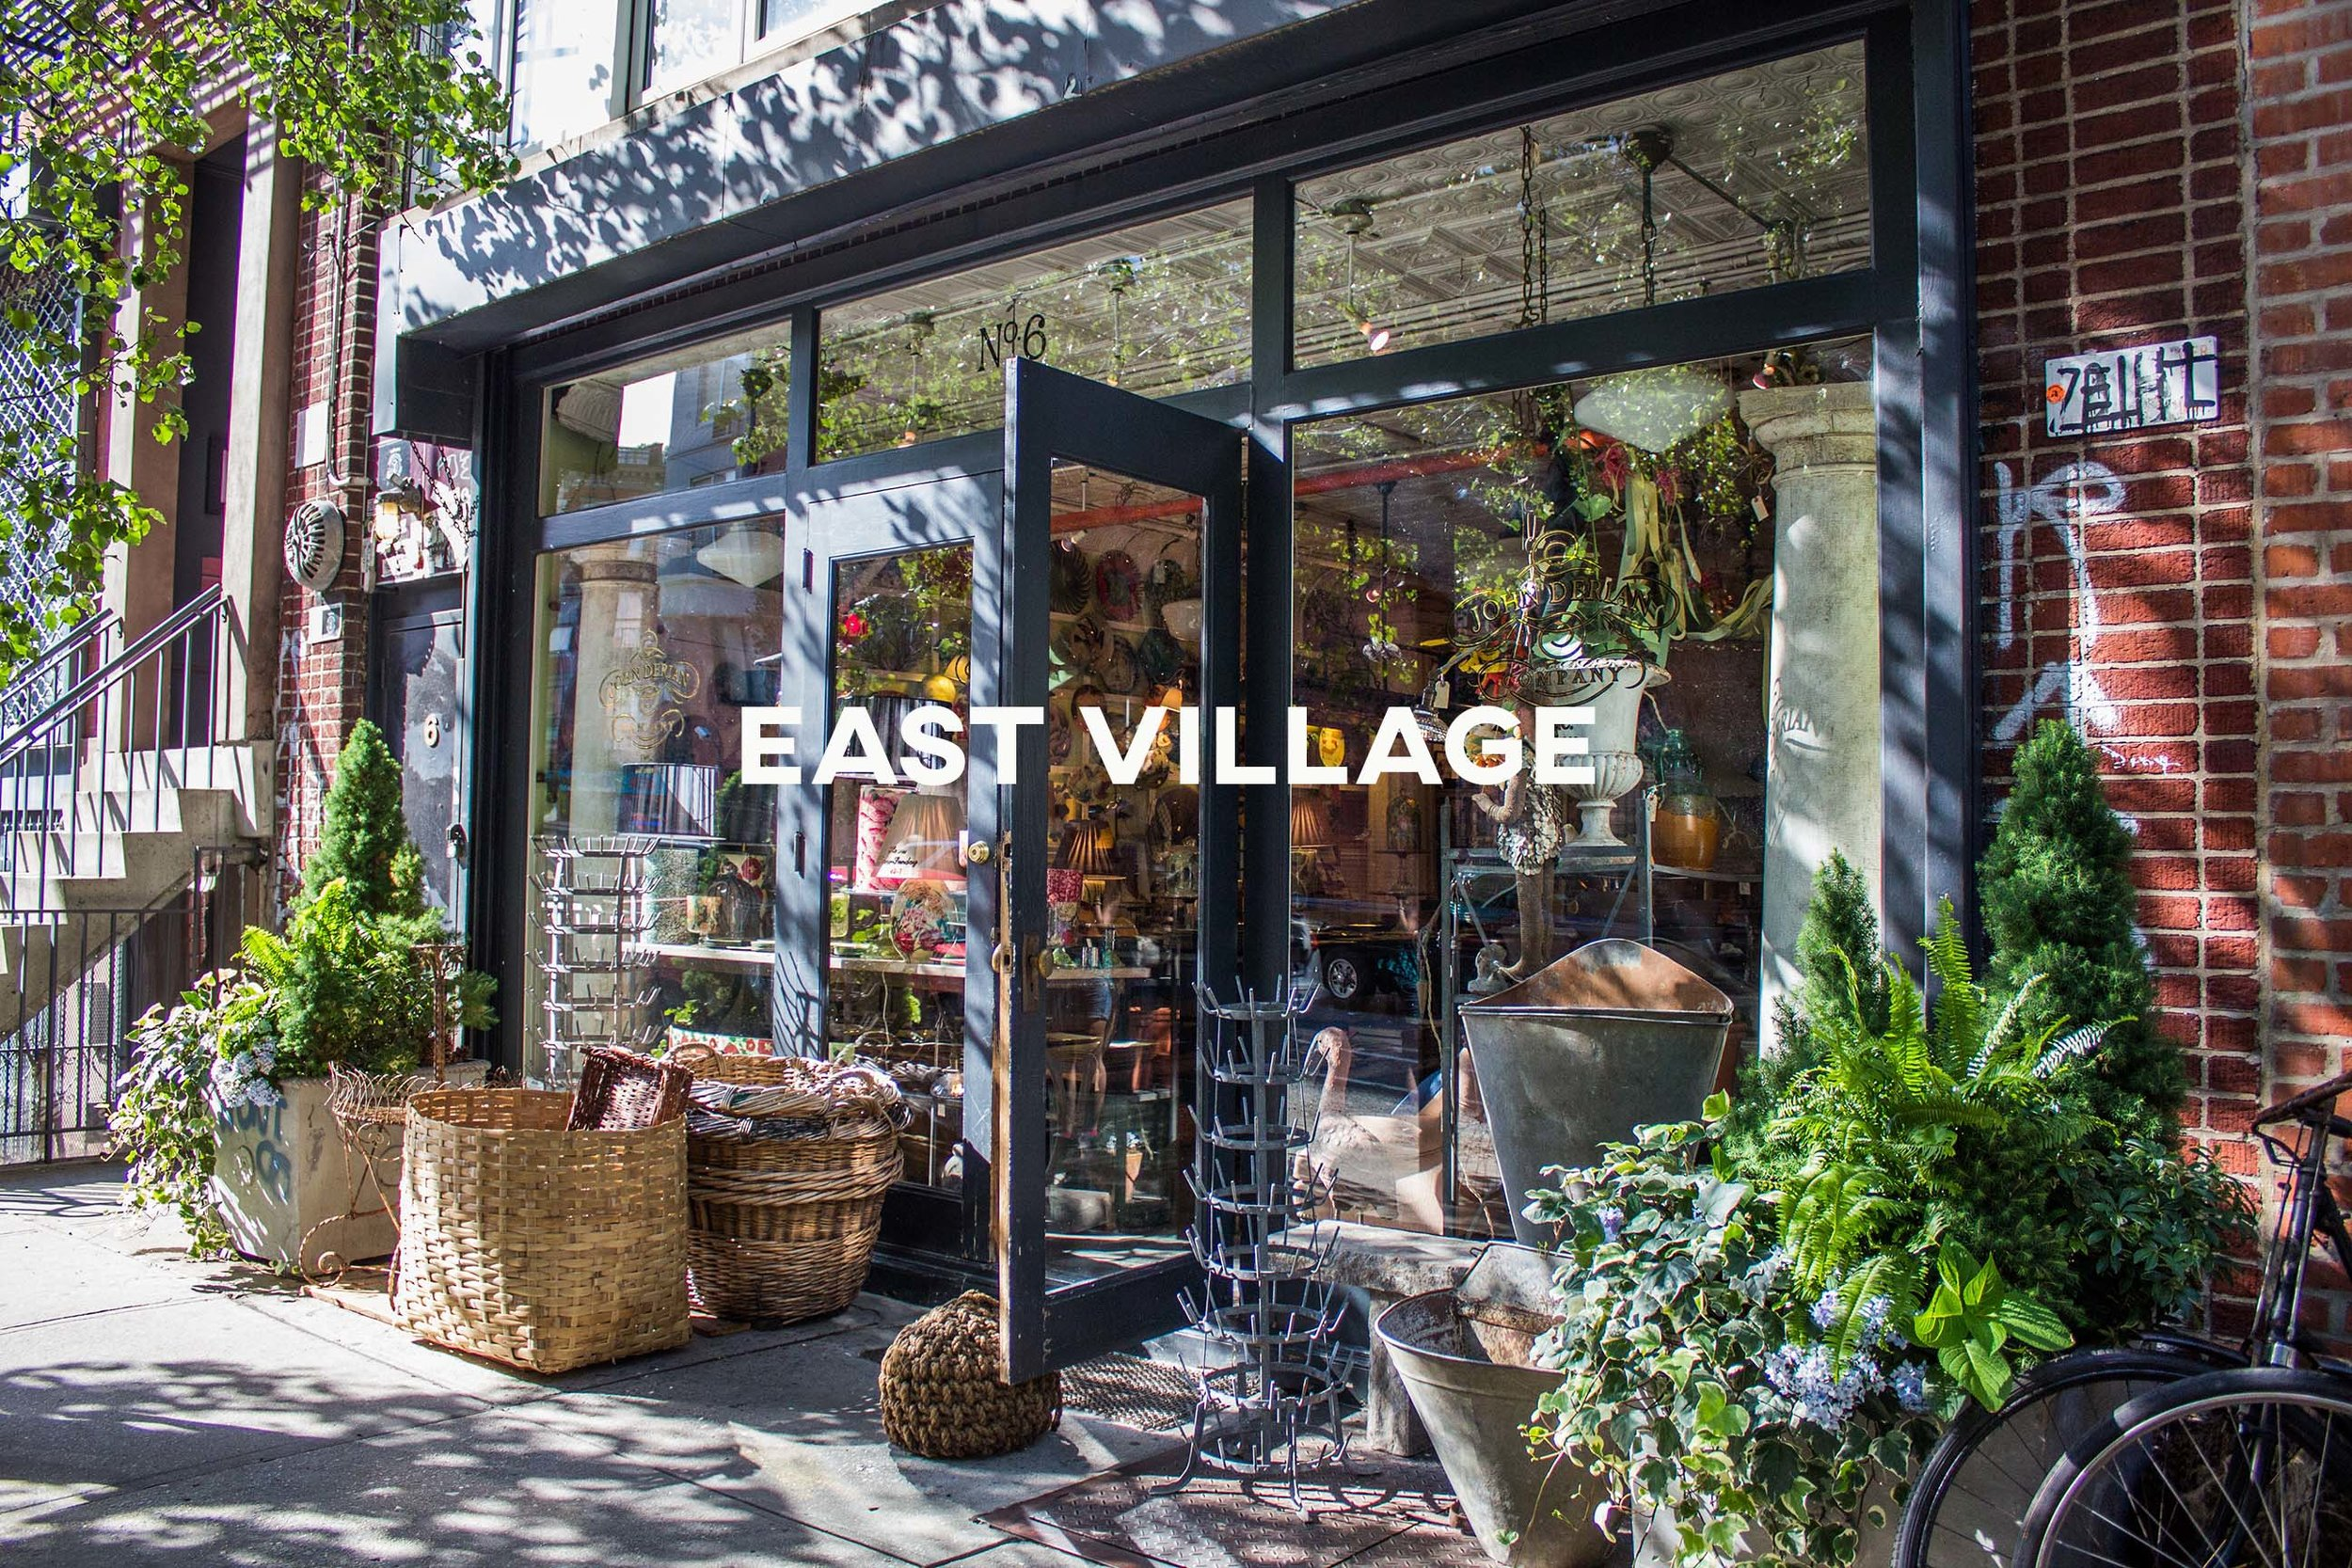 East Village - Casual, quirky, fun--a counterculture vibe straight from the 60's